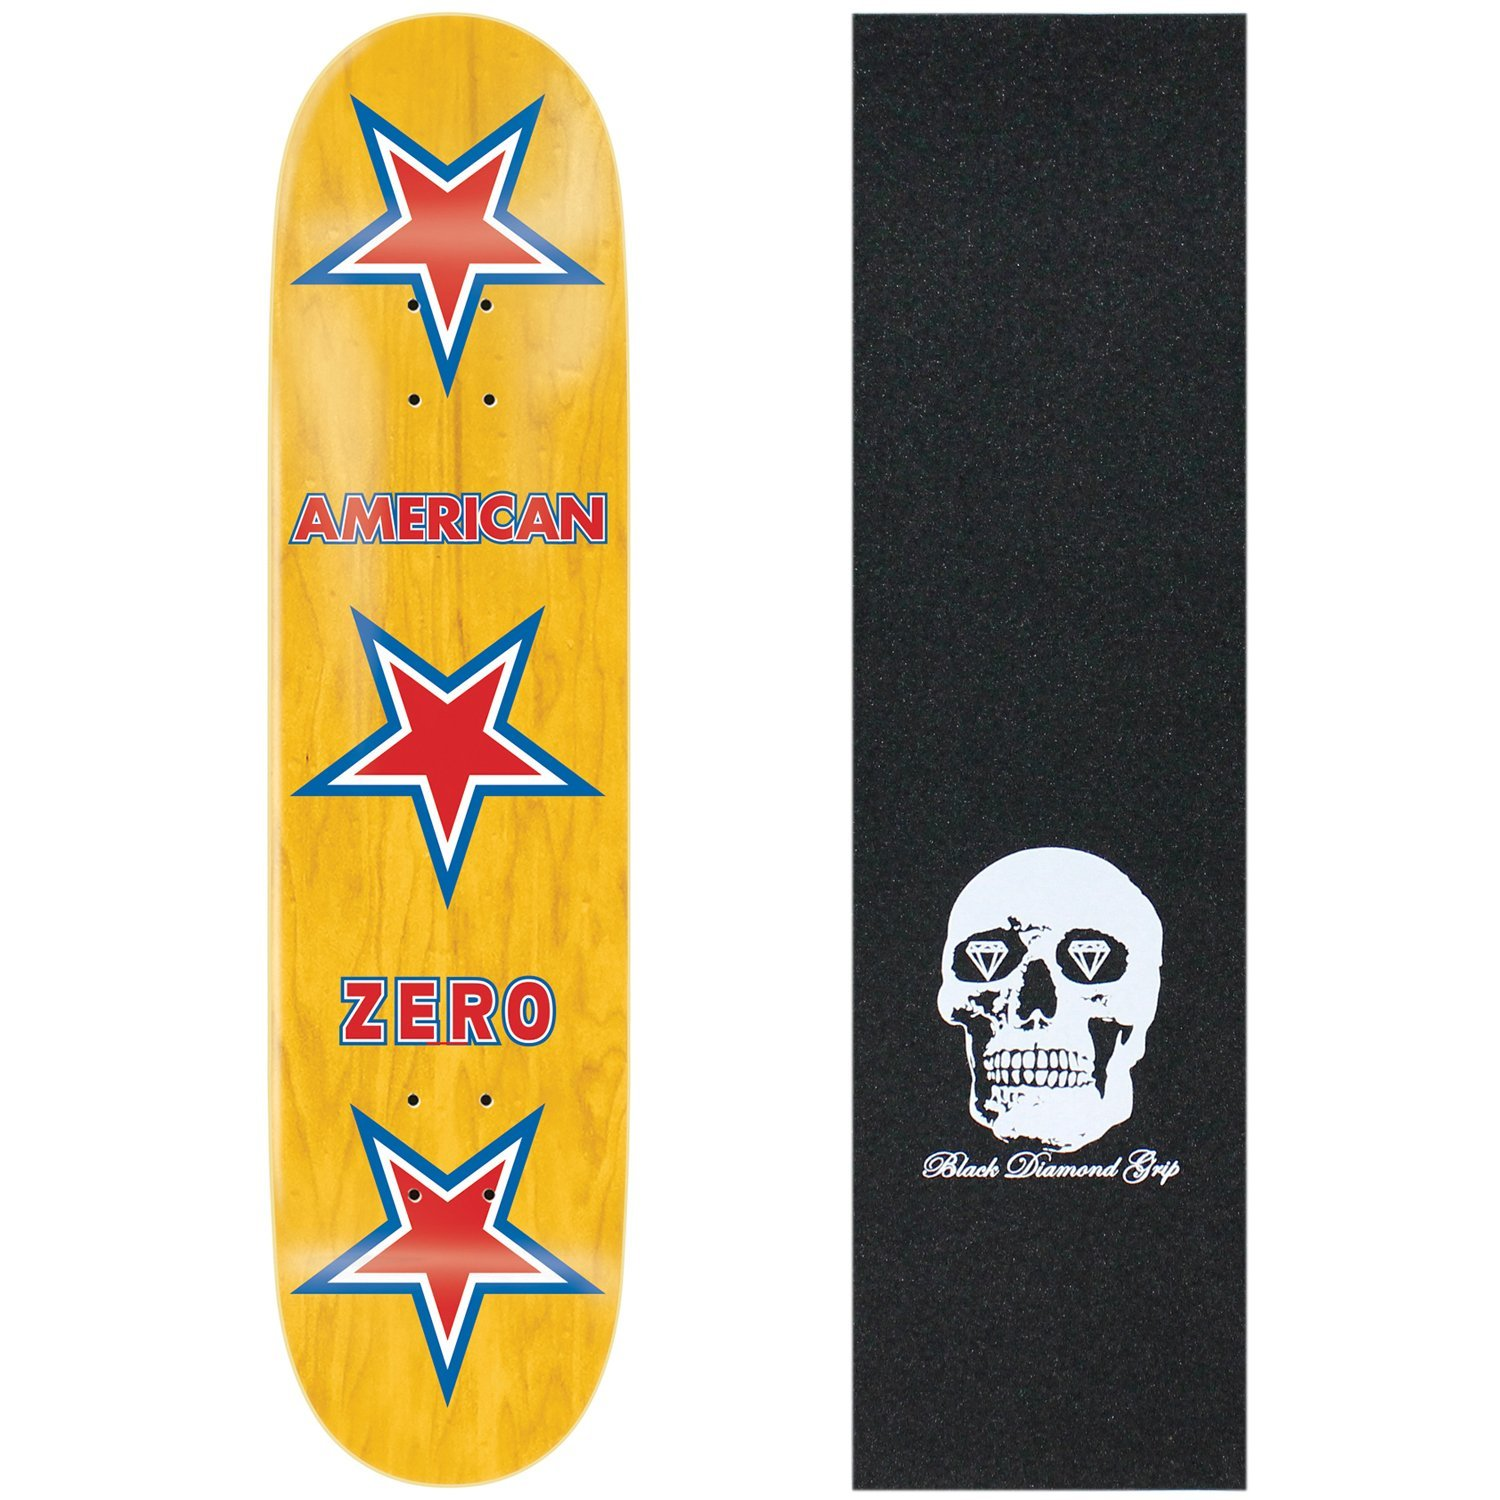 Yellow Skateboard with Red Stars from the Zero Skateboard Brand Best Pop Skateboards